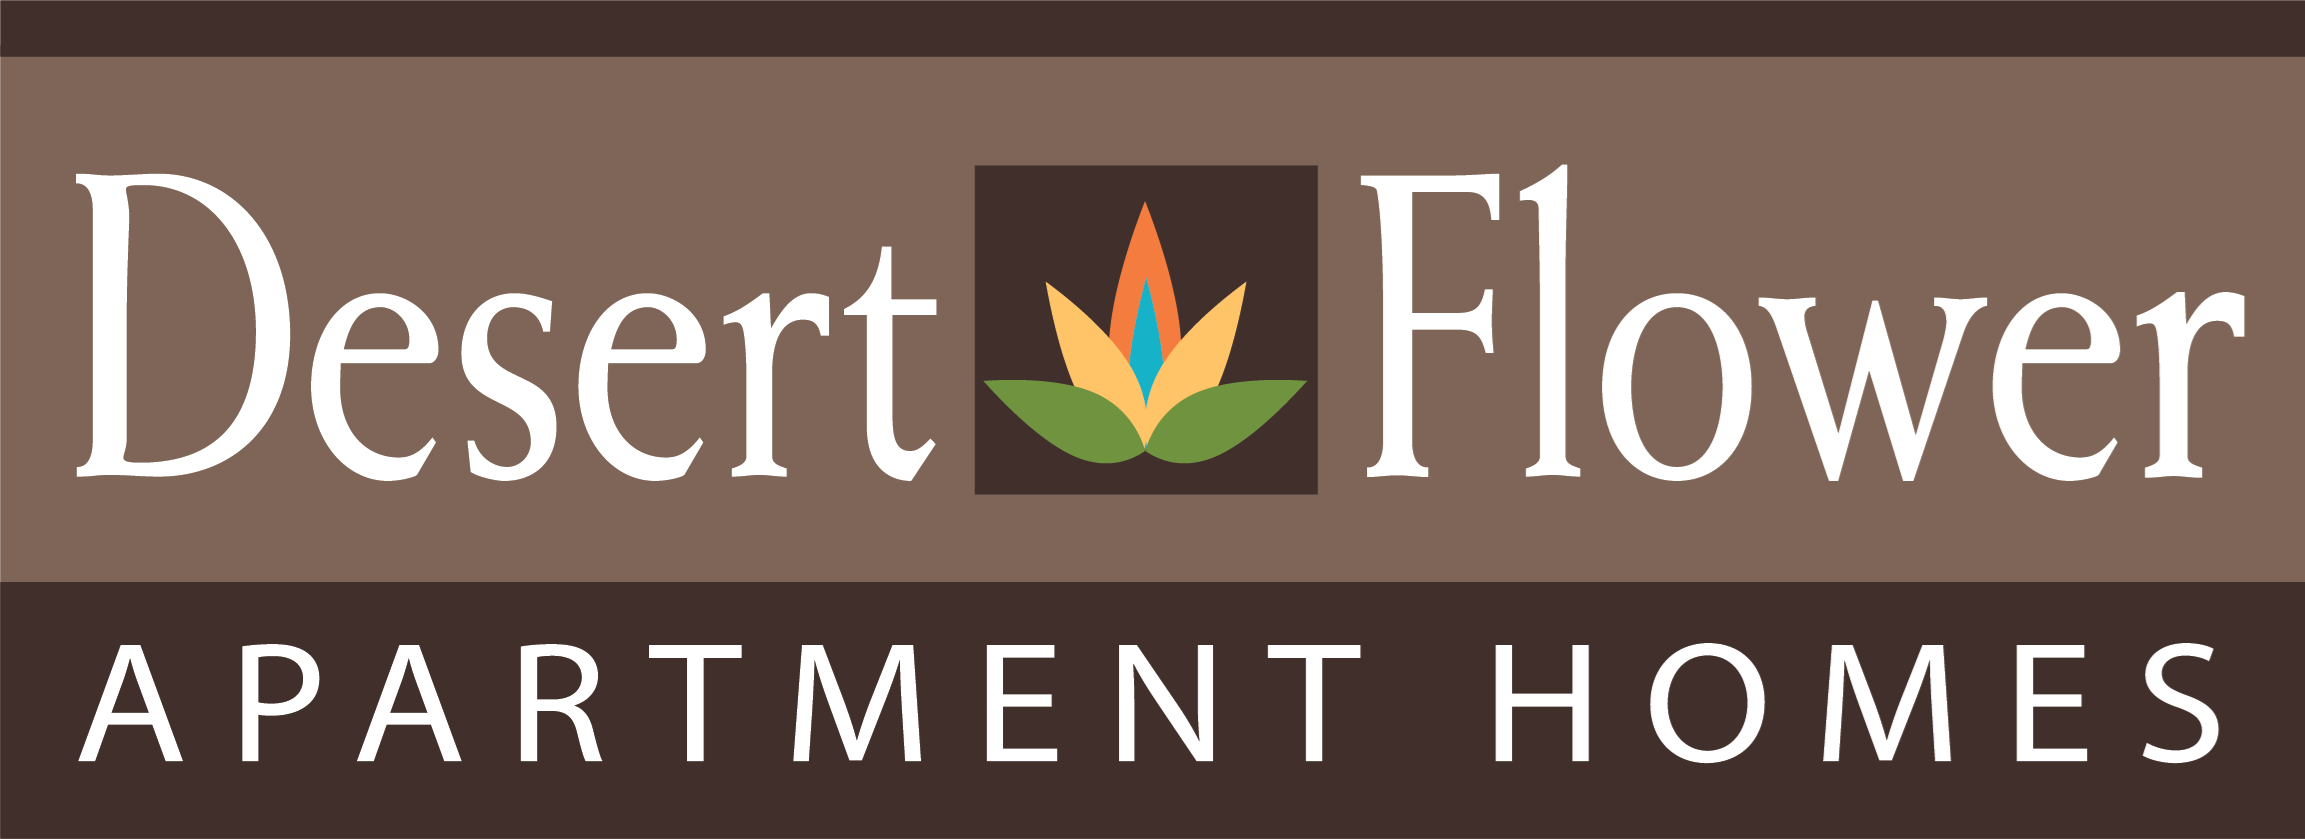 Desert Flower Apartment Homes Property Logo 1